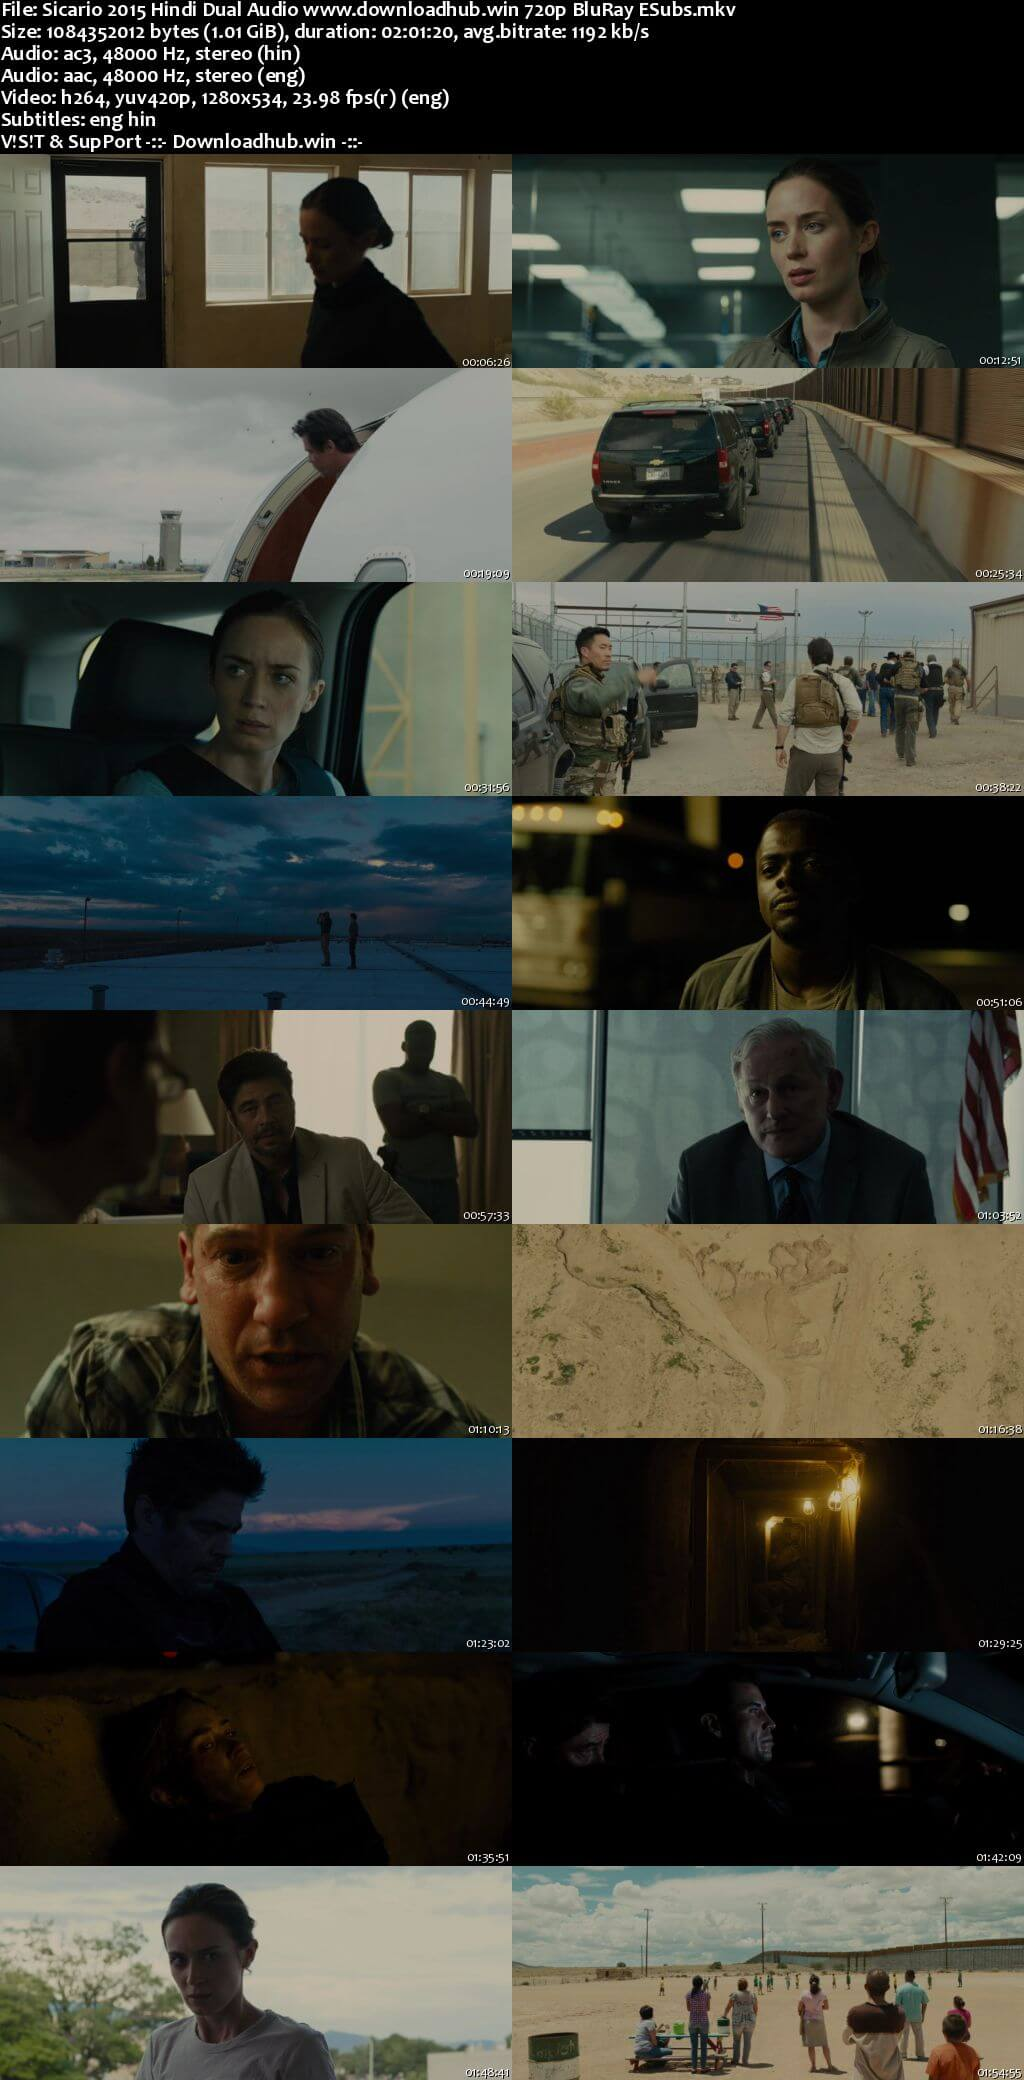 Sicario 2015 Hindi Dual Audio 720p BluRay ESubs